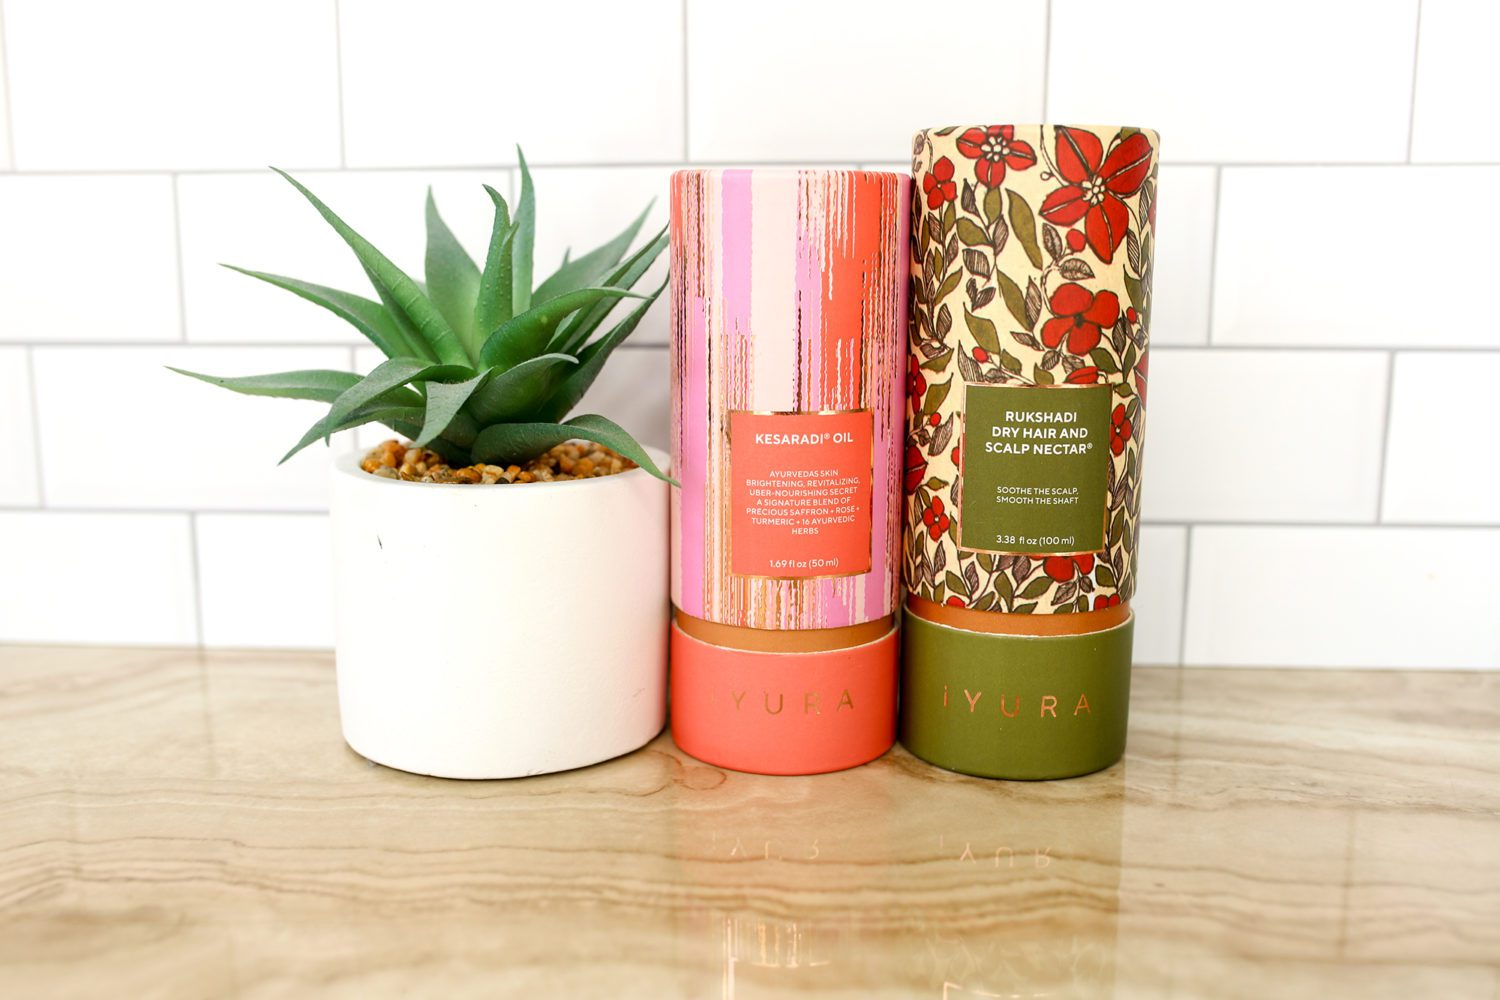 beauty products from iYura